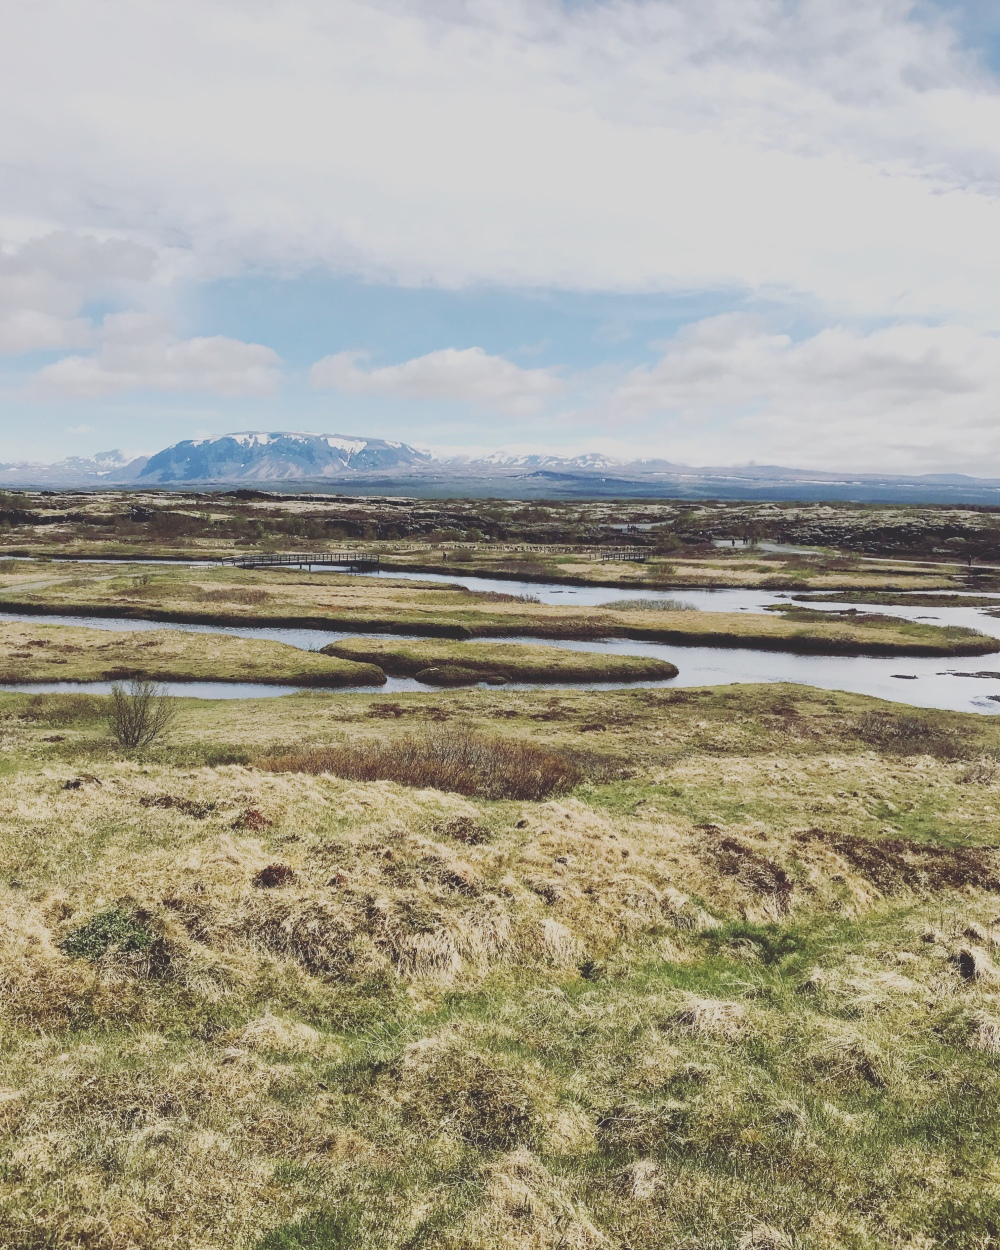 View in Þingvellir National Park- 38 photos to visit iceland from the Wandering darlings